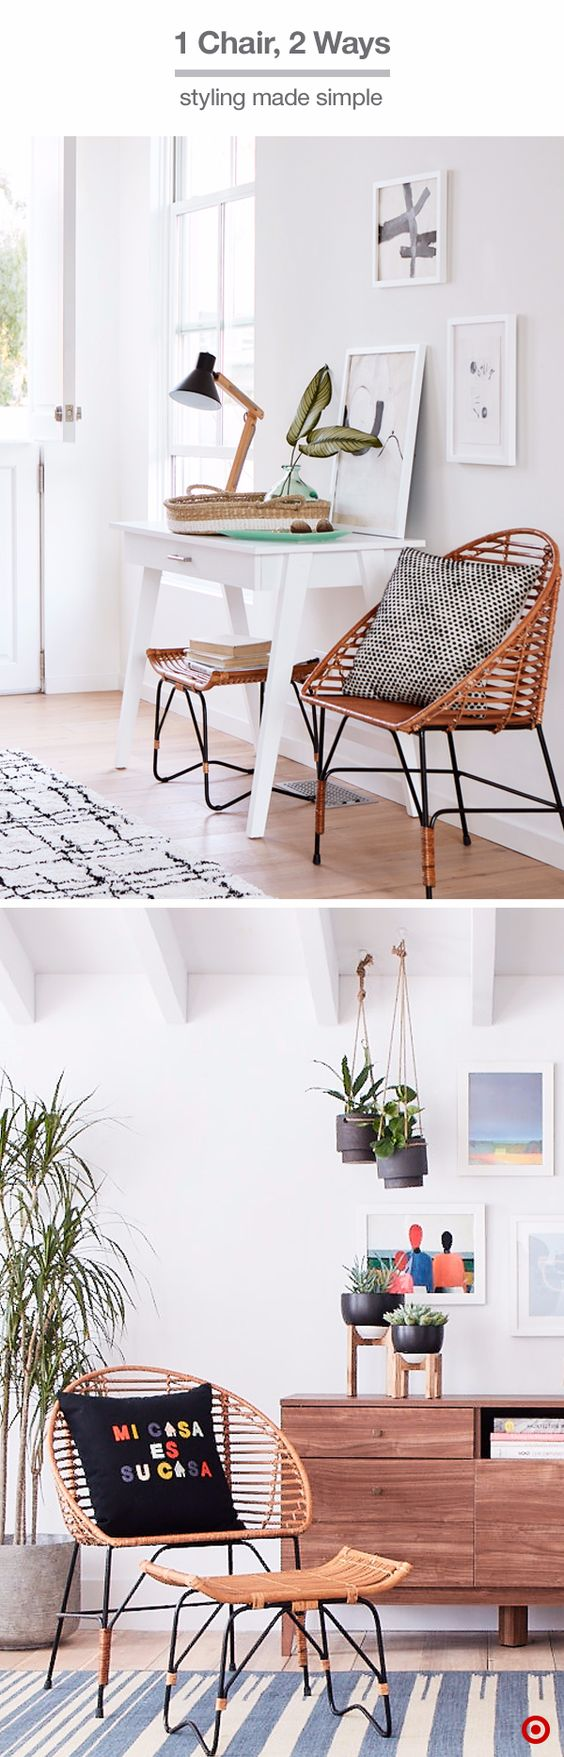 Adding this sculptural rattan chair to a room will create a stylish impact that's still relaxed and low profile. Use it as a place to rest a bag or put on your shoes at the entry, or use it to create texture and interest in small spaces—a throw pillow makes it cozy and you can use the ottoman for additional elevated storage under a console table.